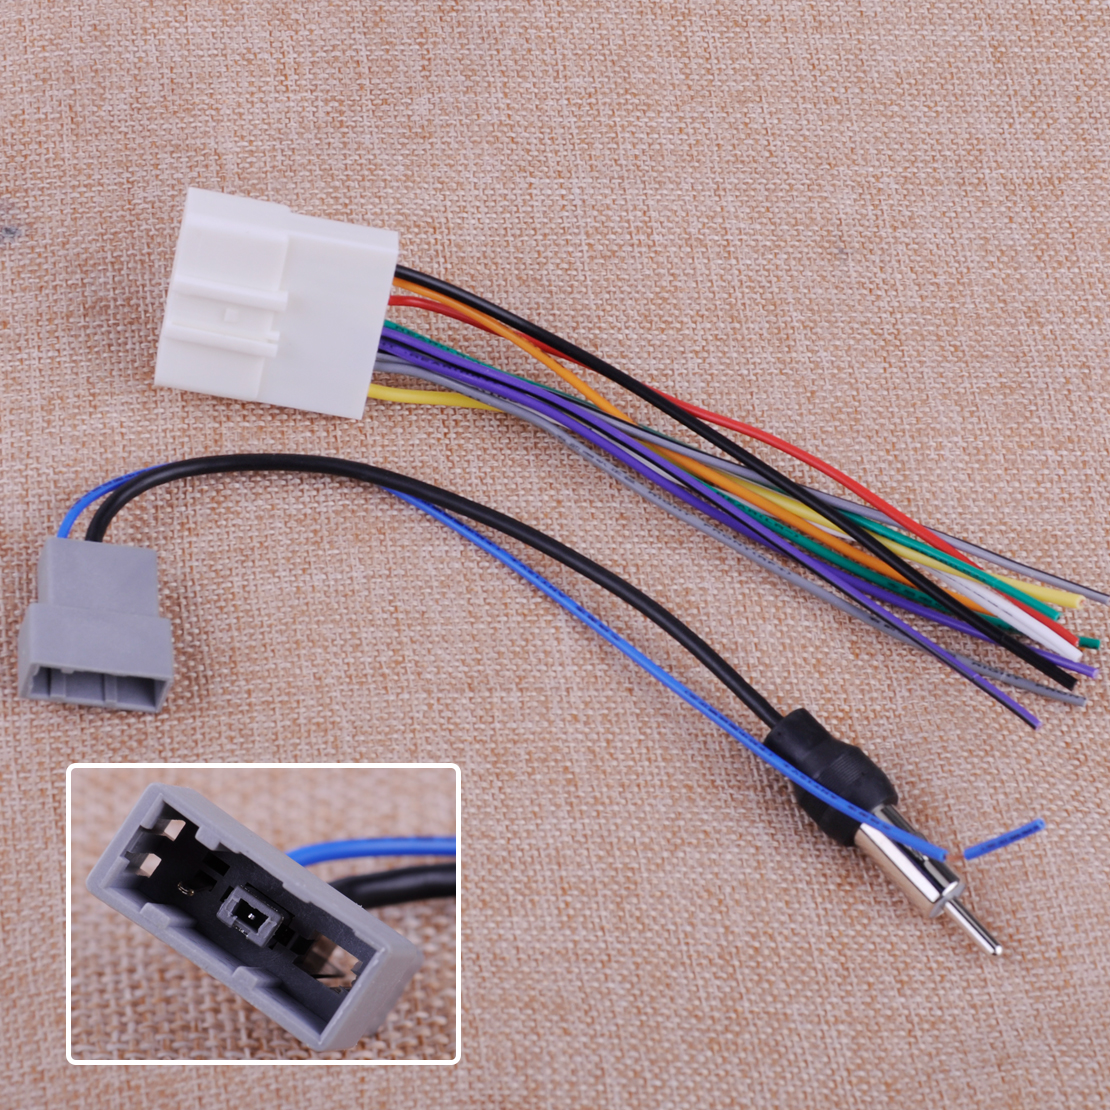 hight resolution of details about 2 car radio install stereo wire harness cable antenna adapter for nissan subaru